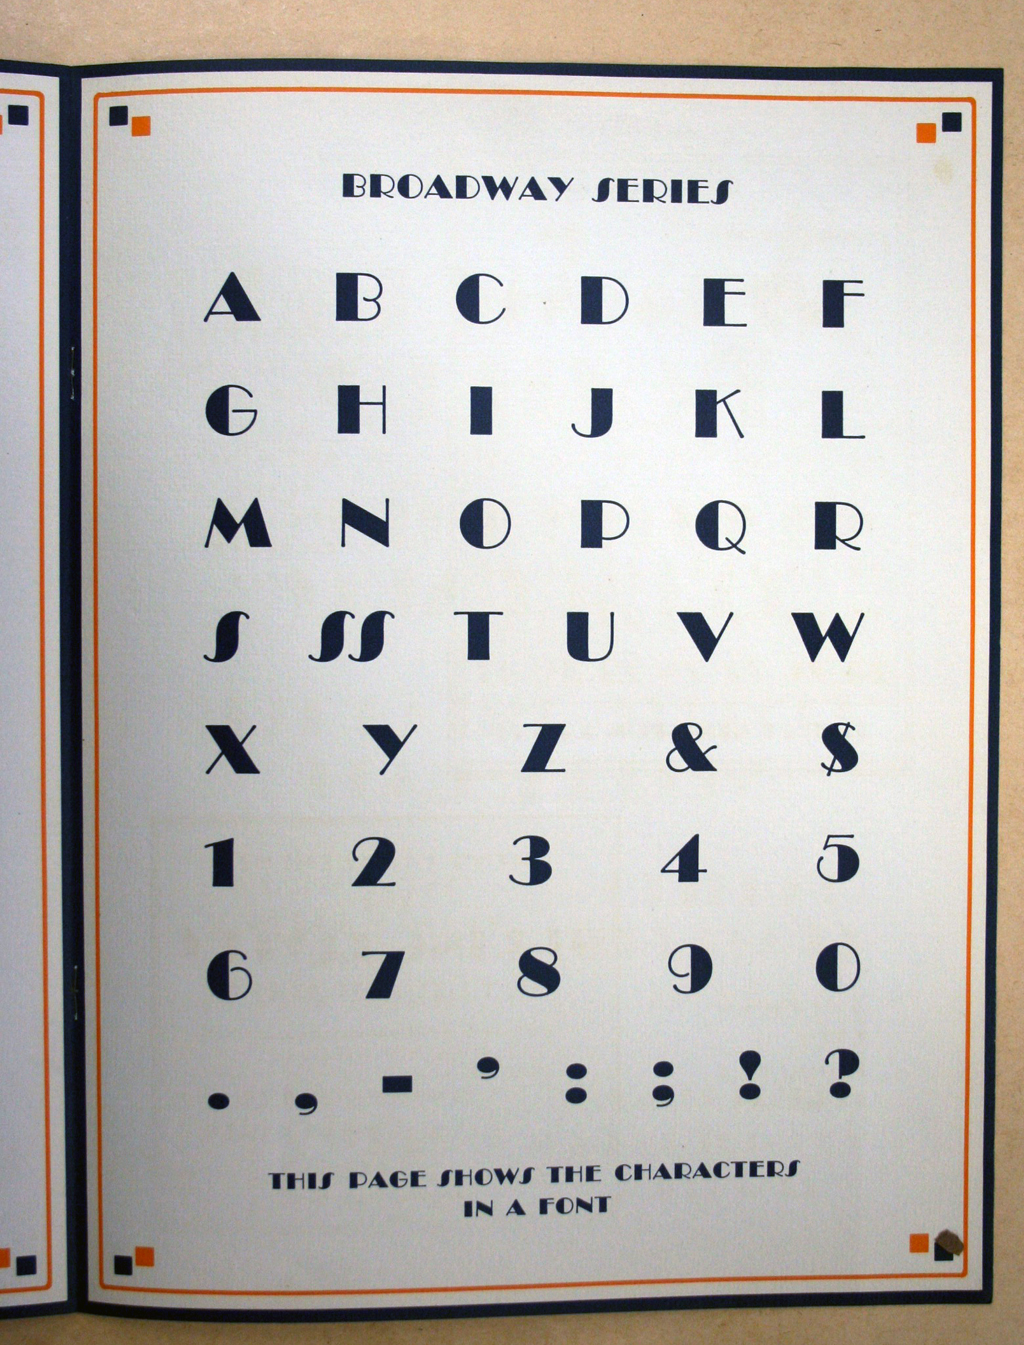 Character set for Broadway (Morris Fuller Benton, American Type Founders, 1928).